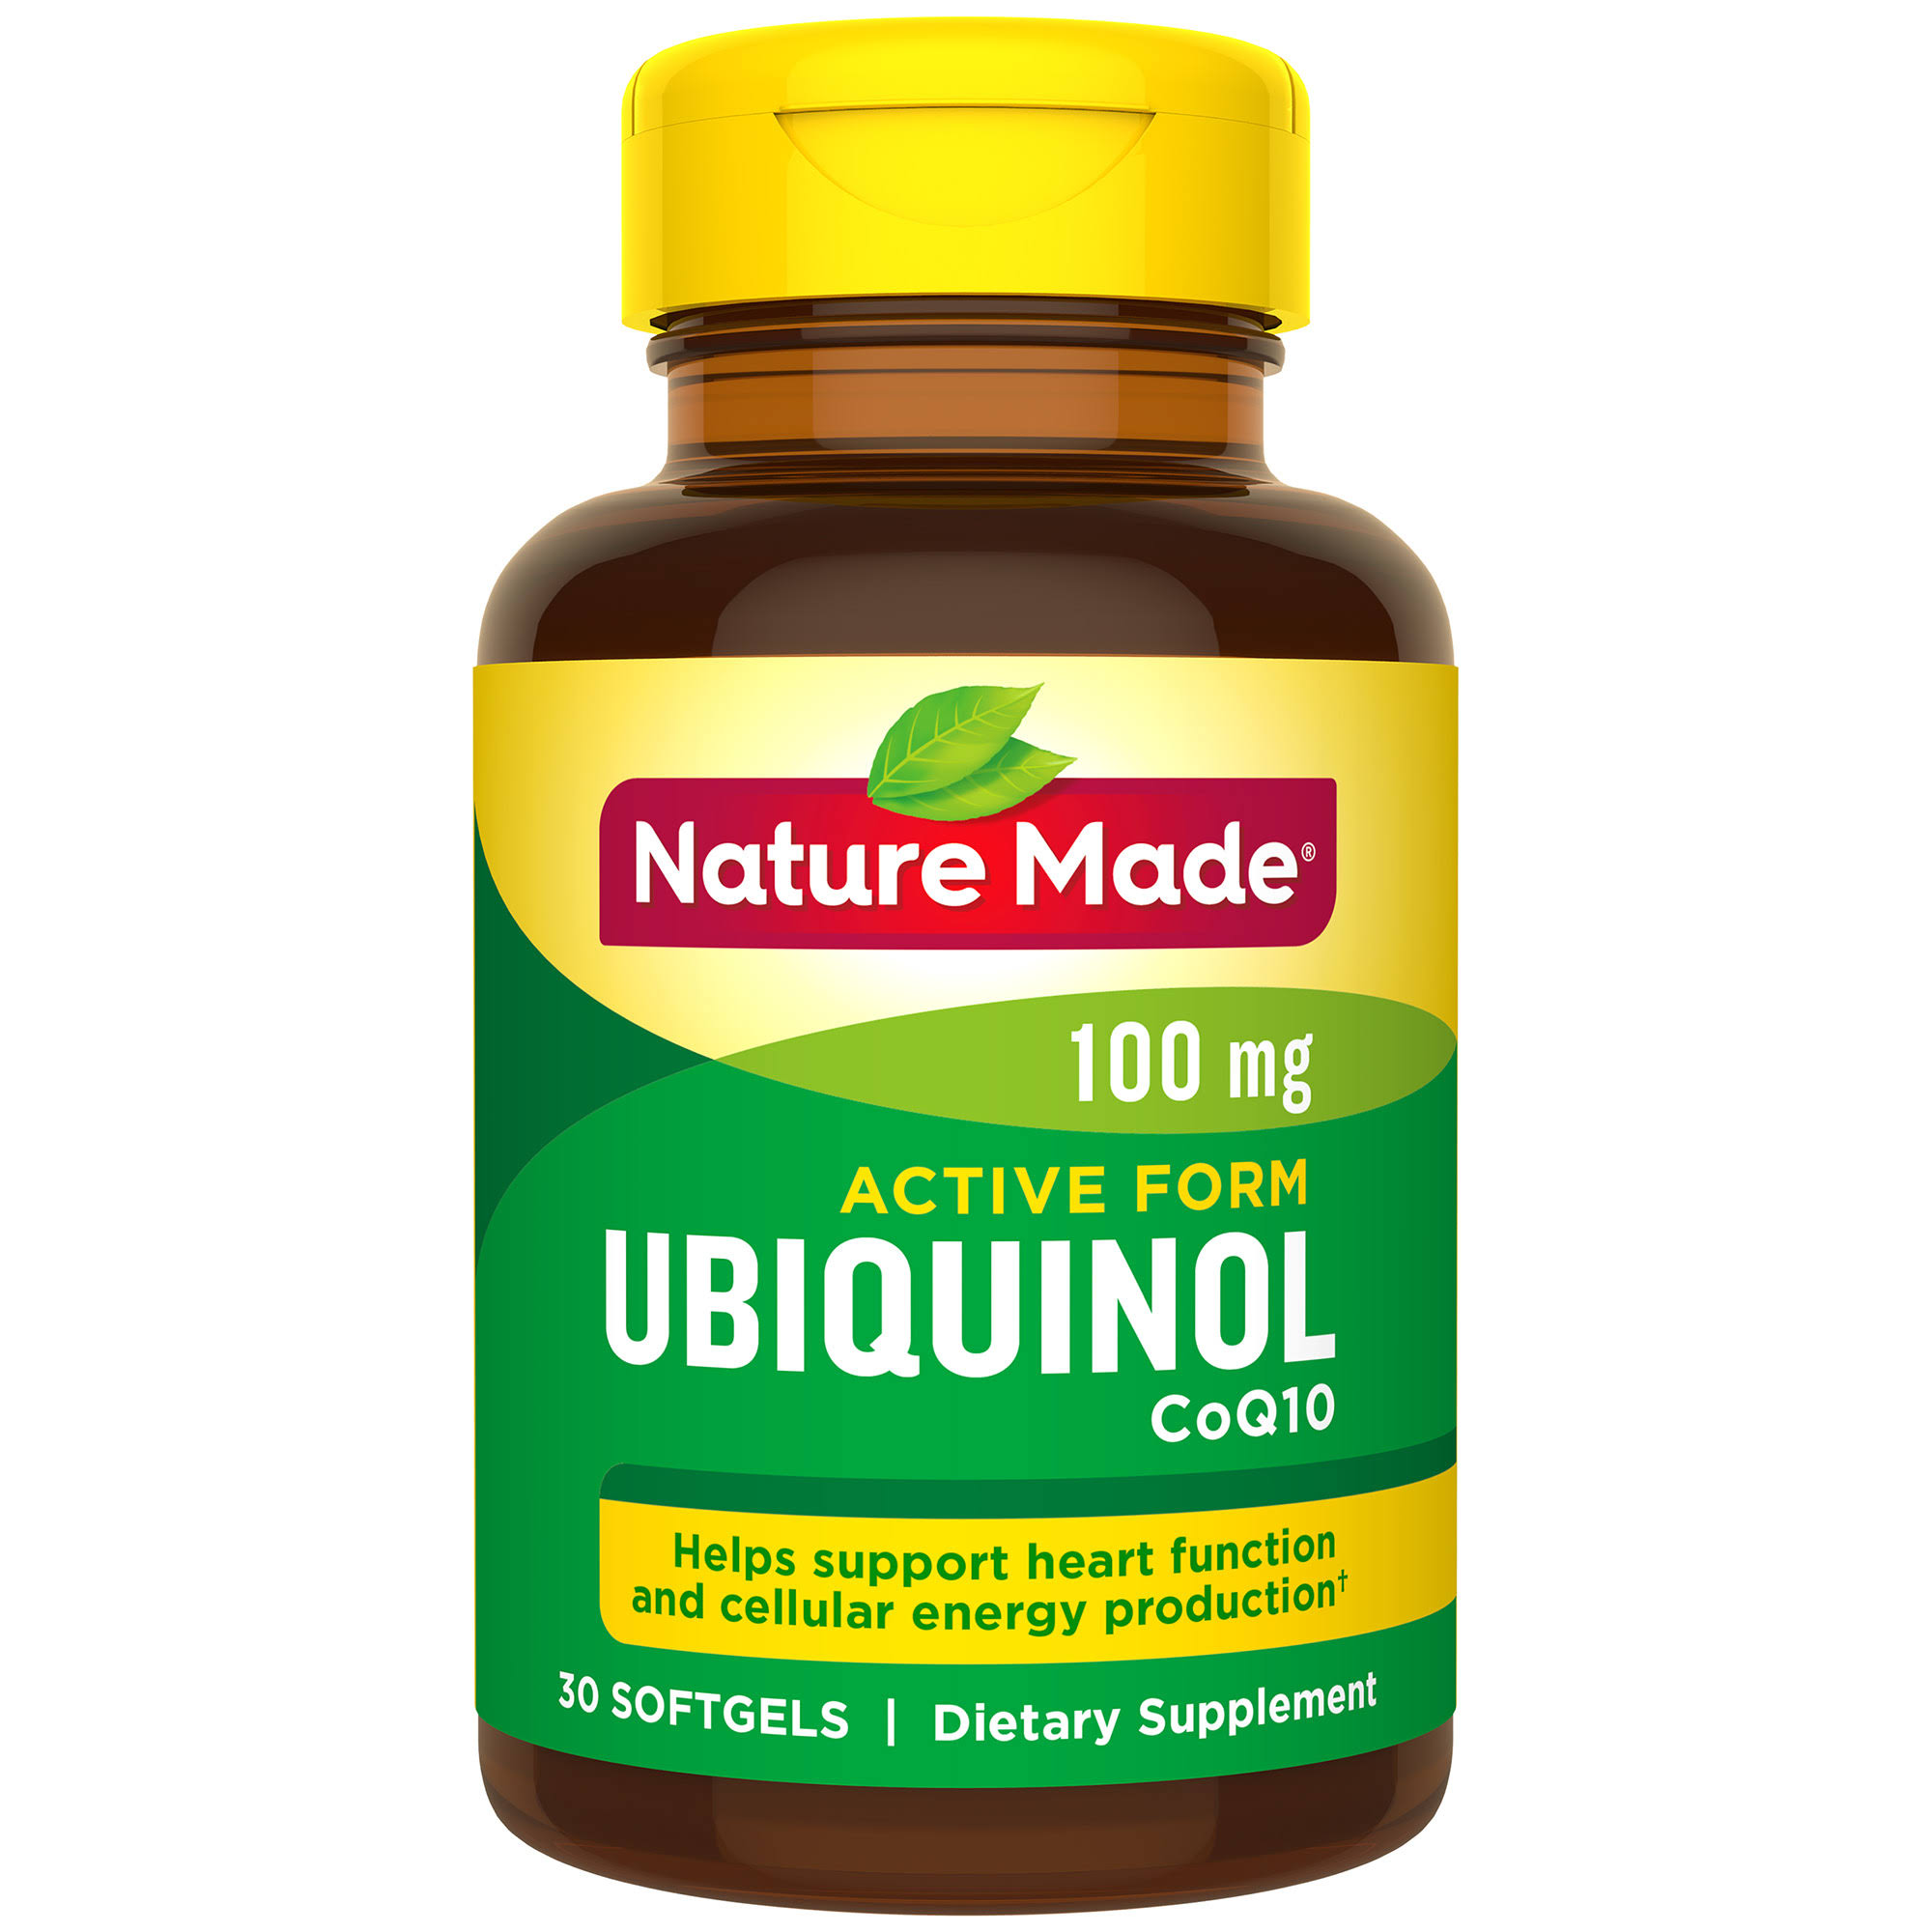 Nature Made Ubiquinol CoQ10 Supplement - 30ct